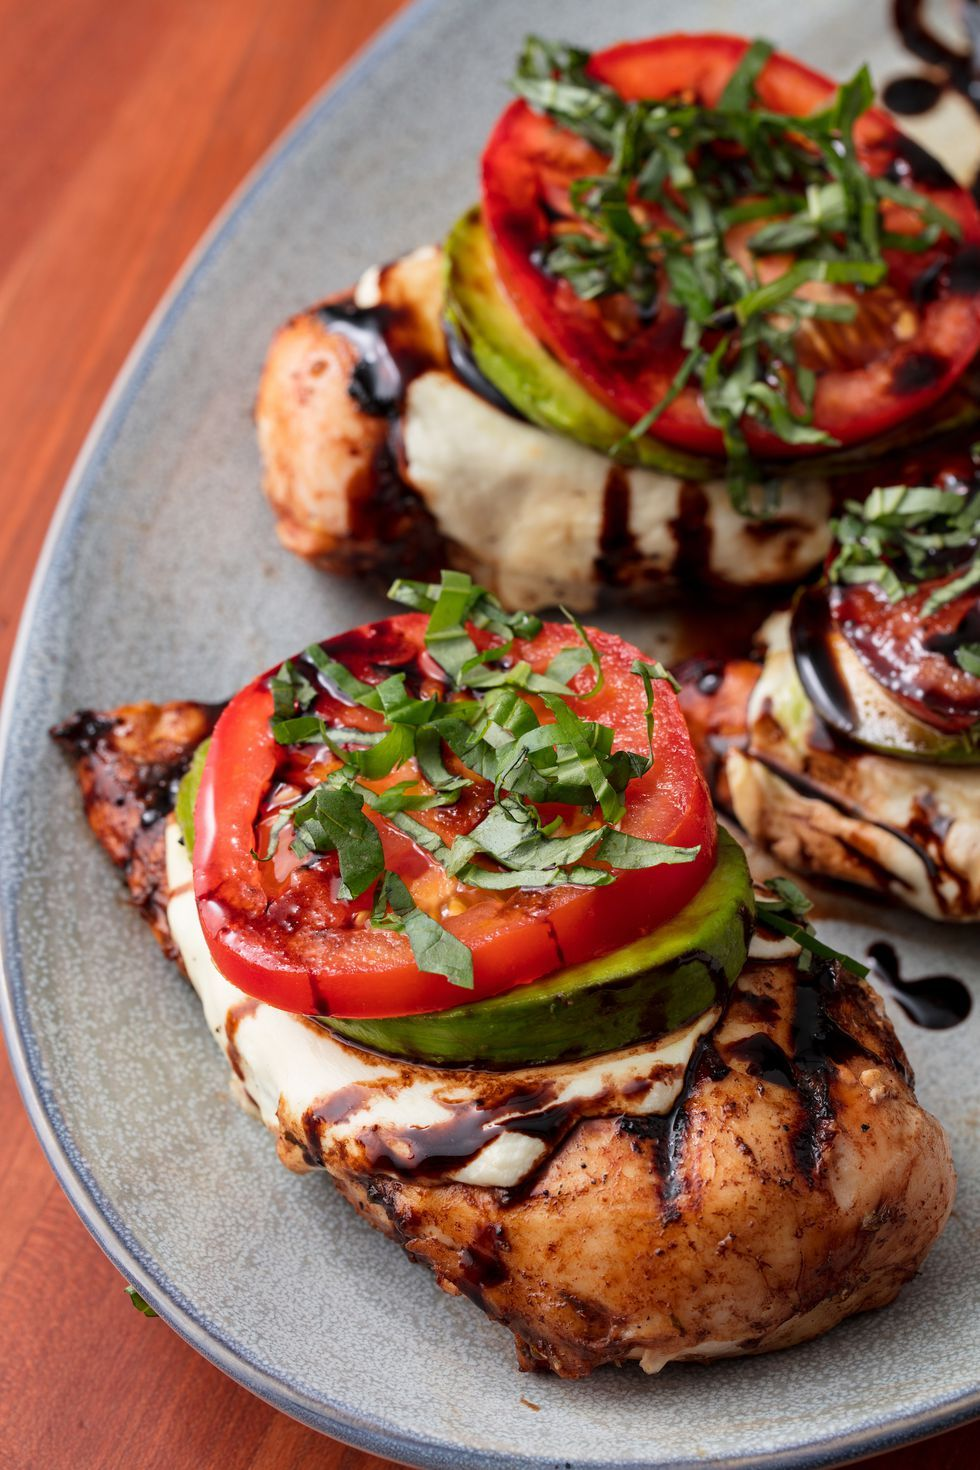 100 Best Grilling Ideas Recipes Things To Cook On The Grill